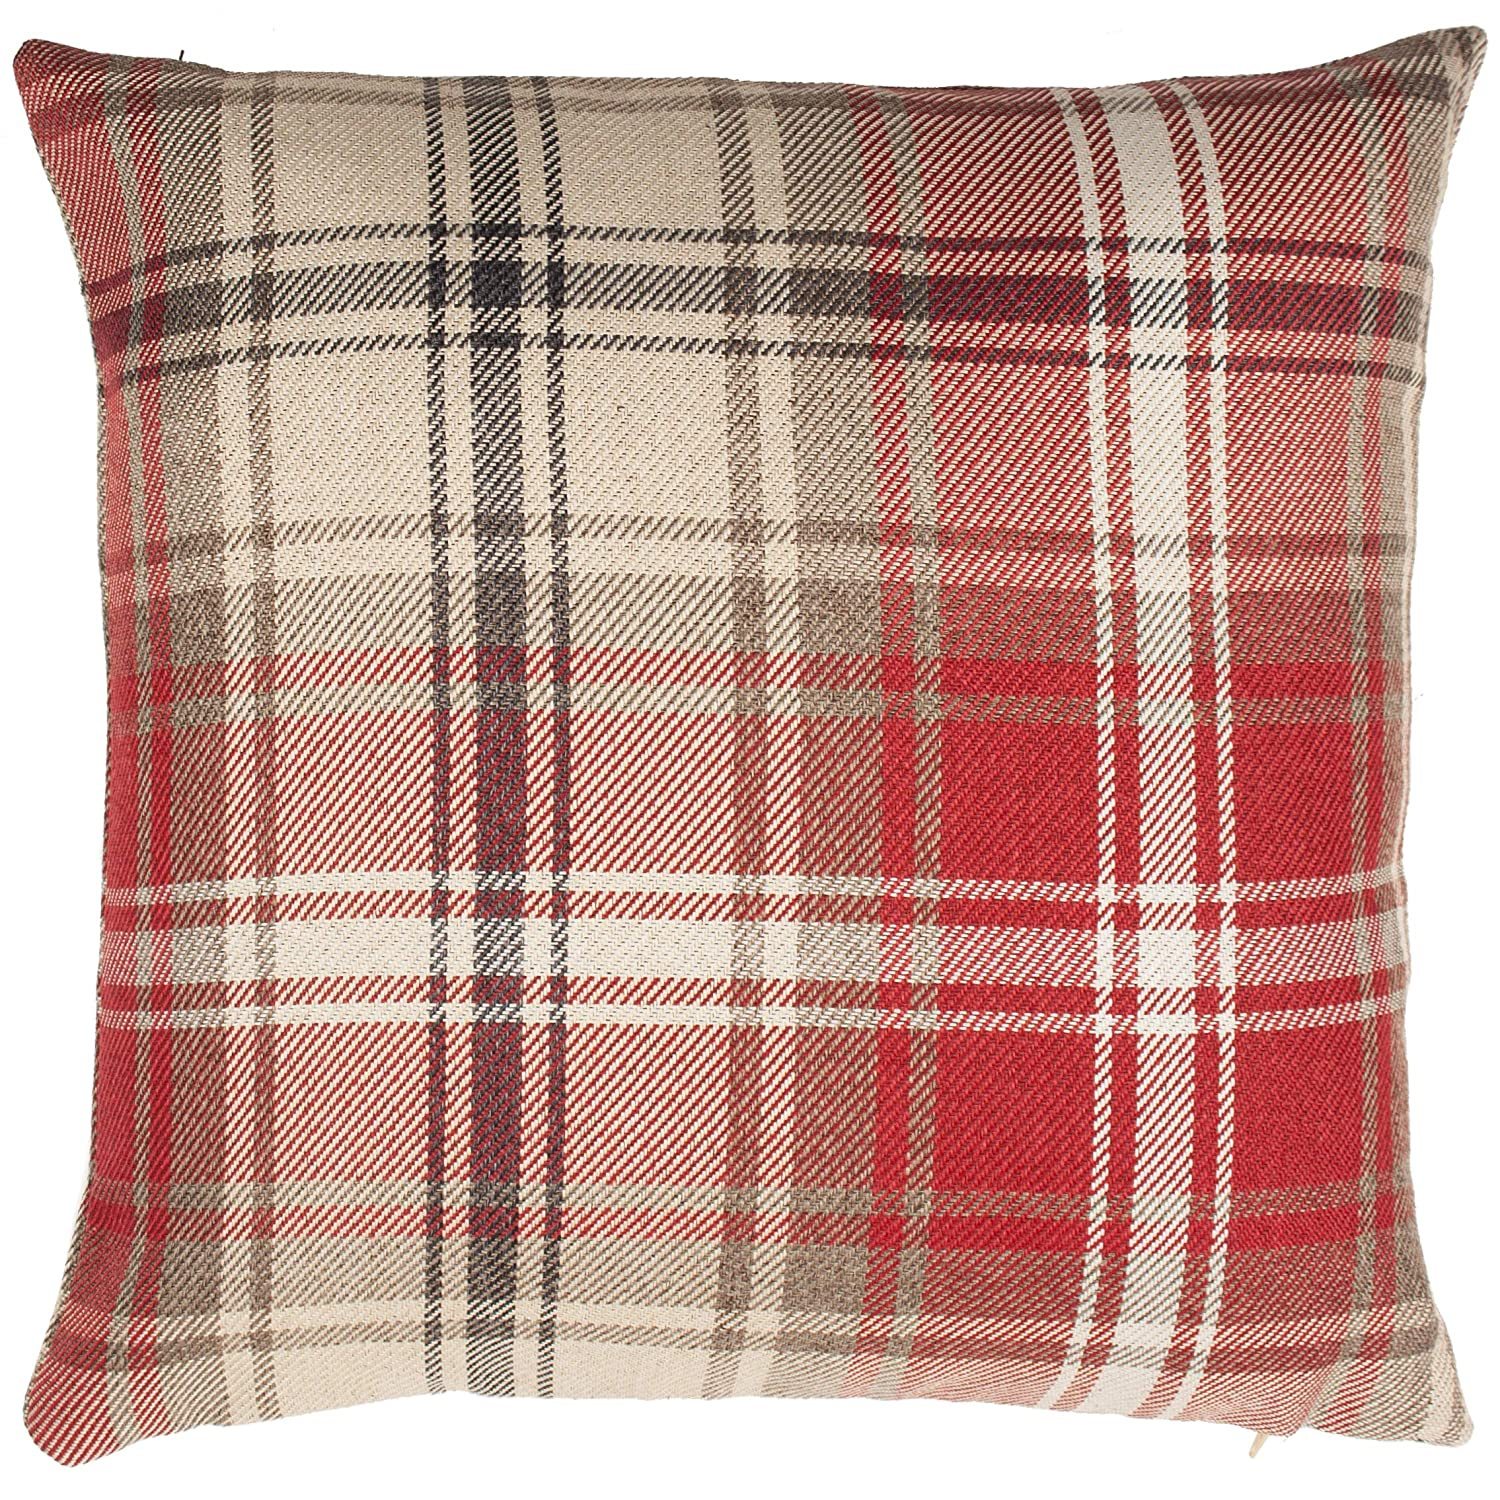 Angus Pillow Covers 26